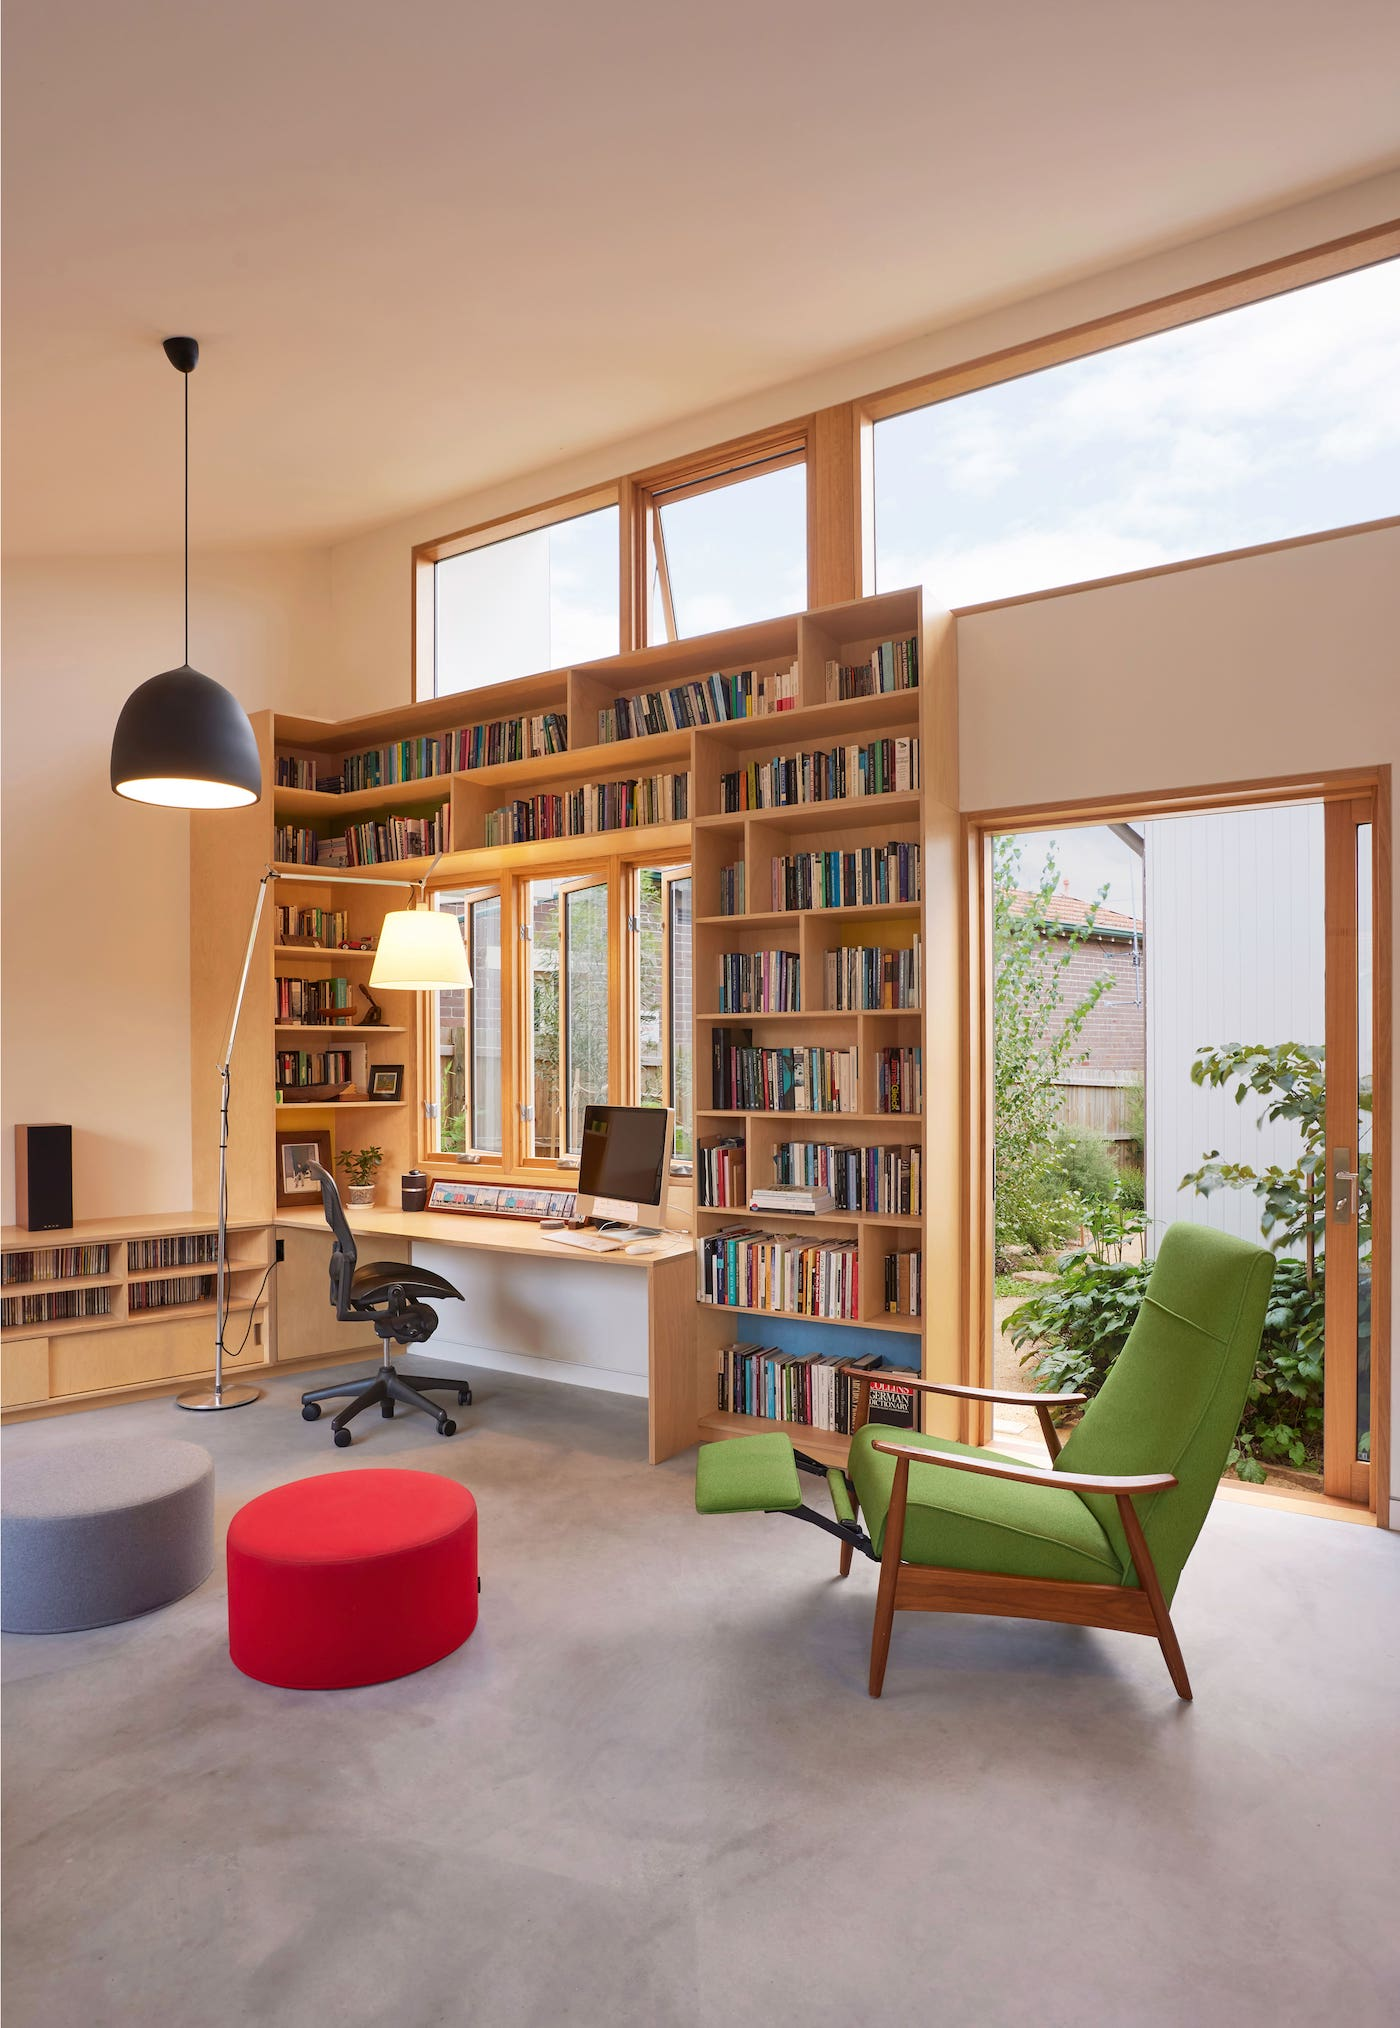 Library wall surrounds desk